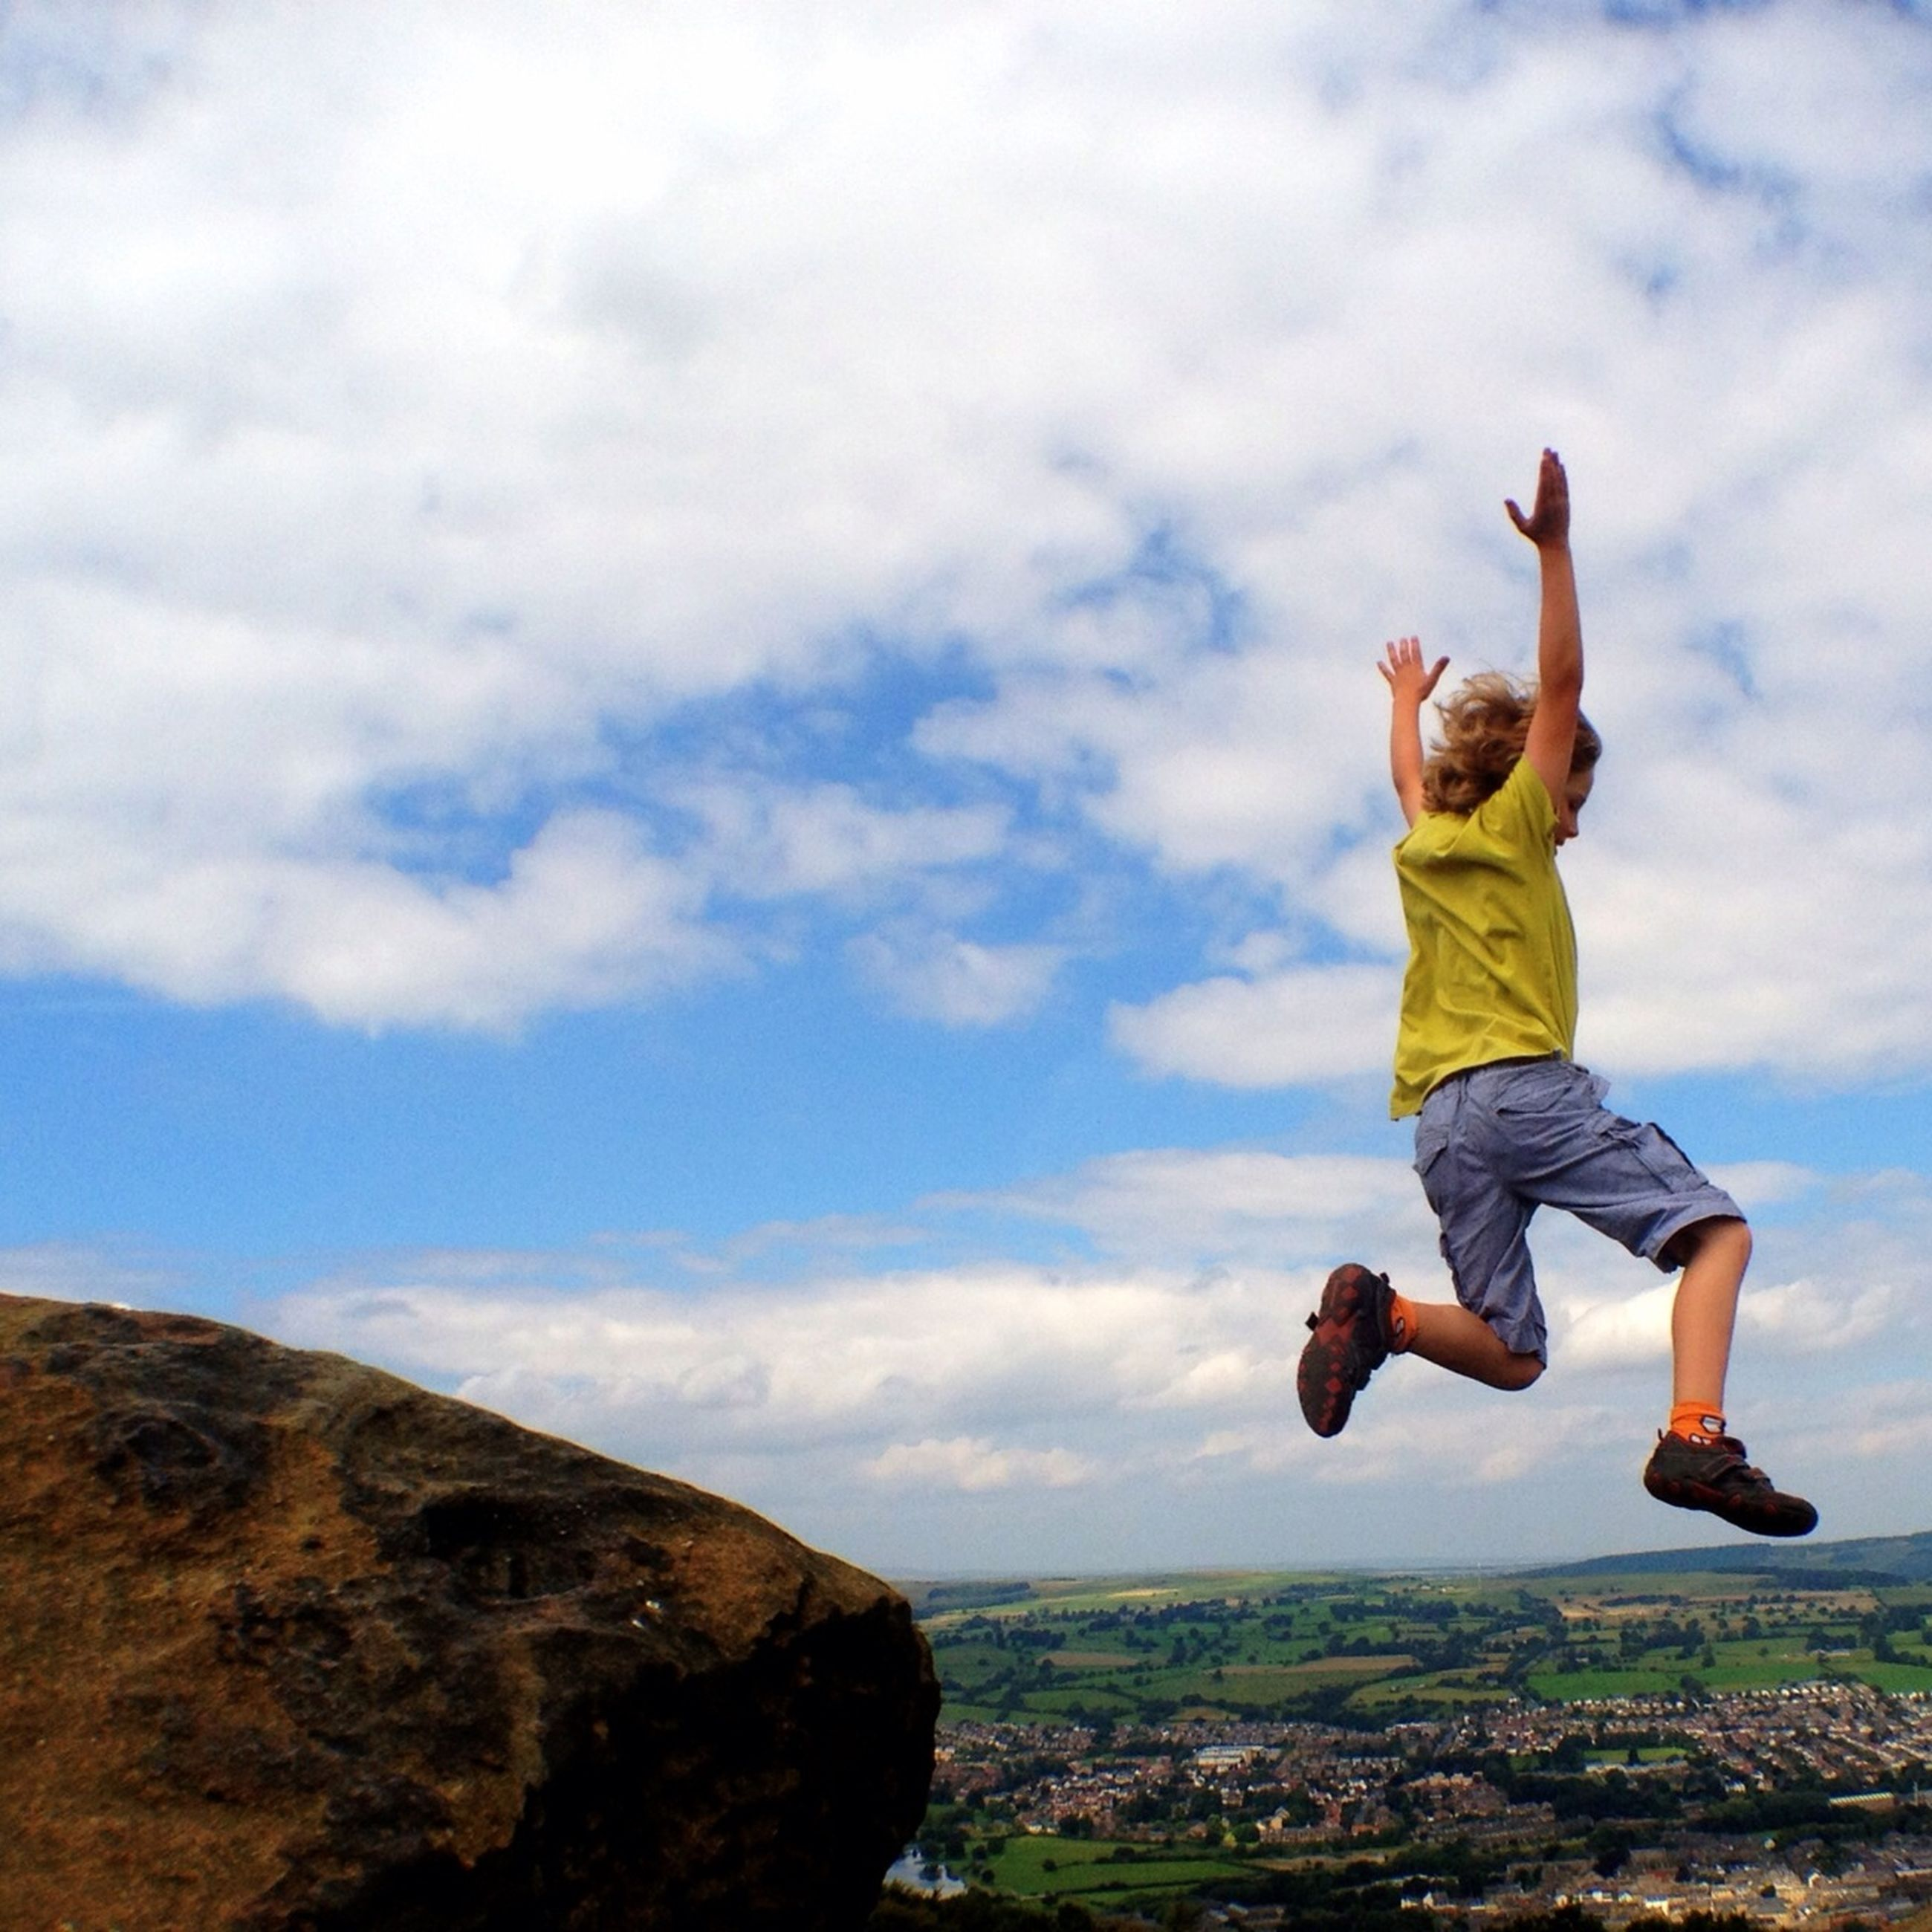 lifestyles, full length, leisure activity, sky, casual clothing, cloud - sky, standing, arms outstretched, carefree, freedom, jumping, men, cloudy, mid-air, arms raised, cloud, balance, person